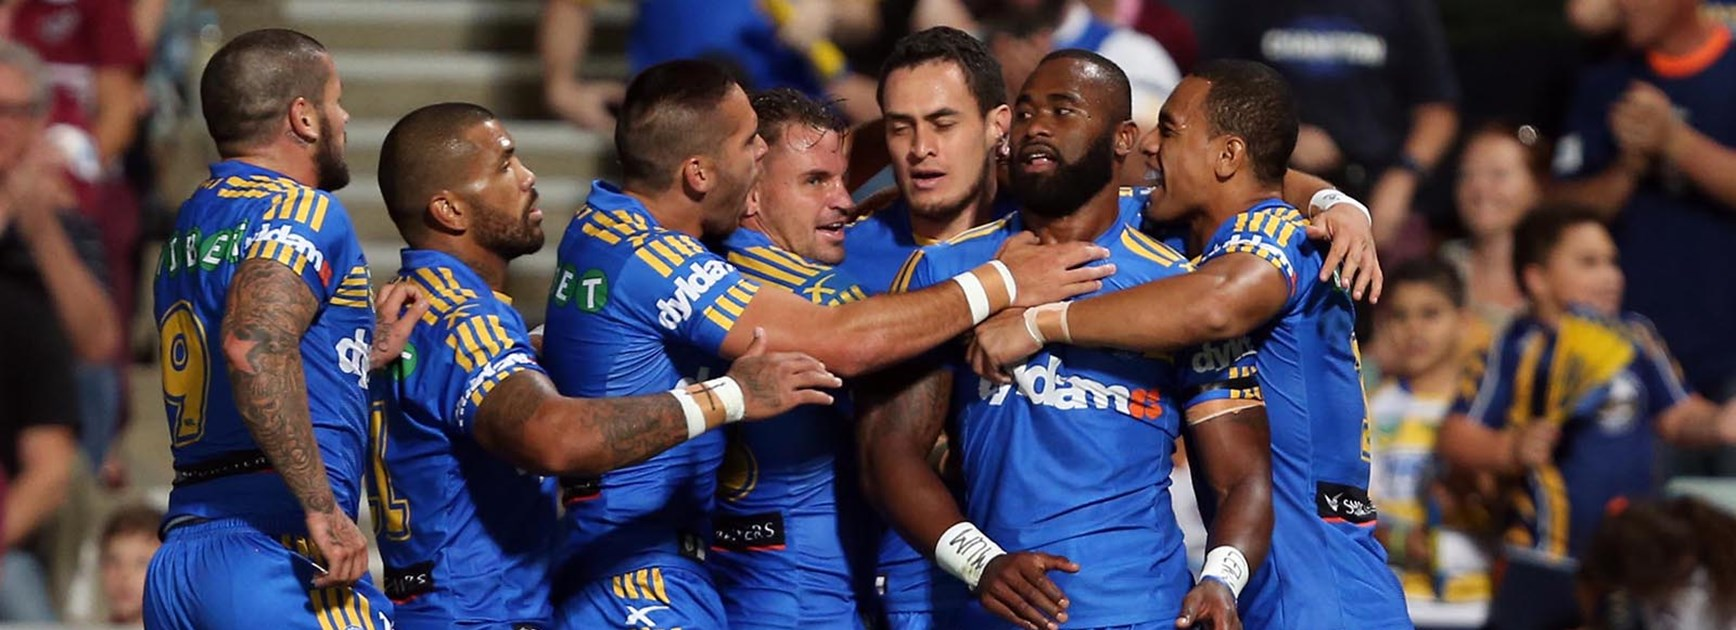 The Eels celebrate one of Semi Radradra's three tries against Manly in Round 1.